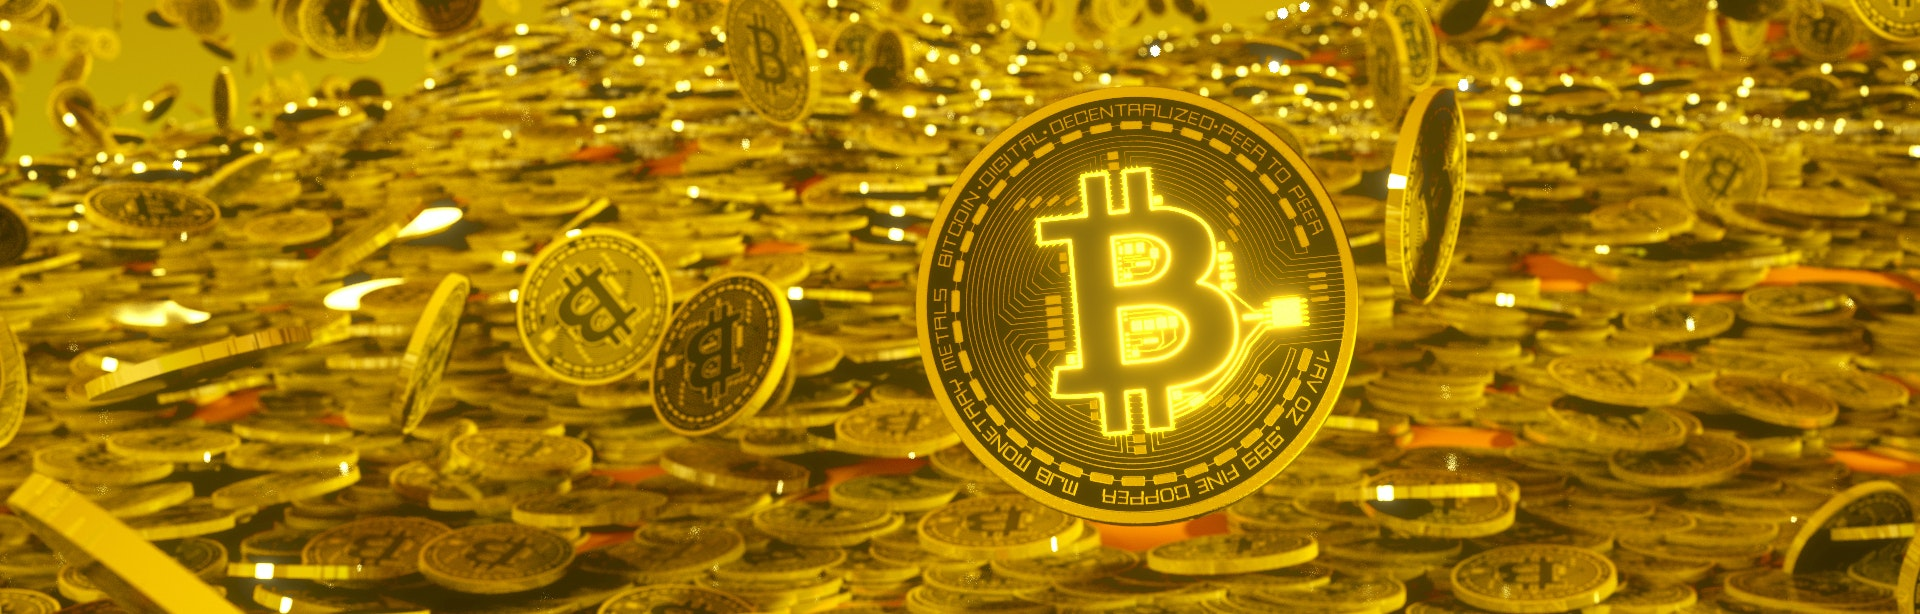 5 types of Bitcoin explained